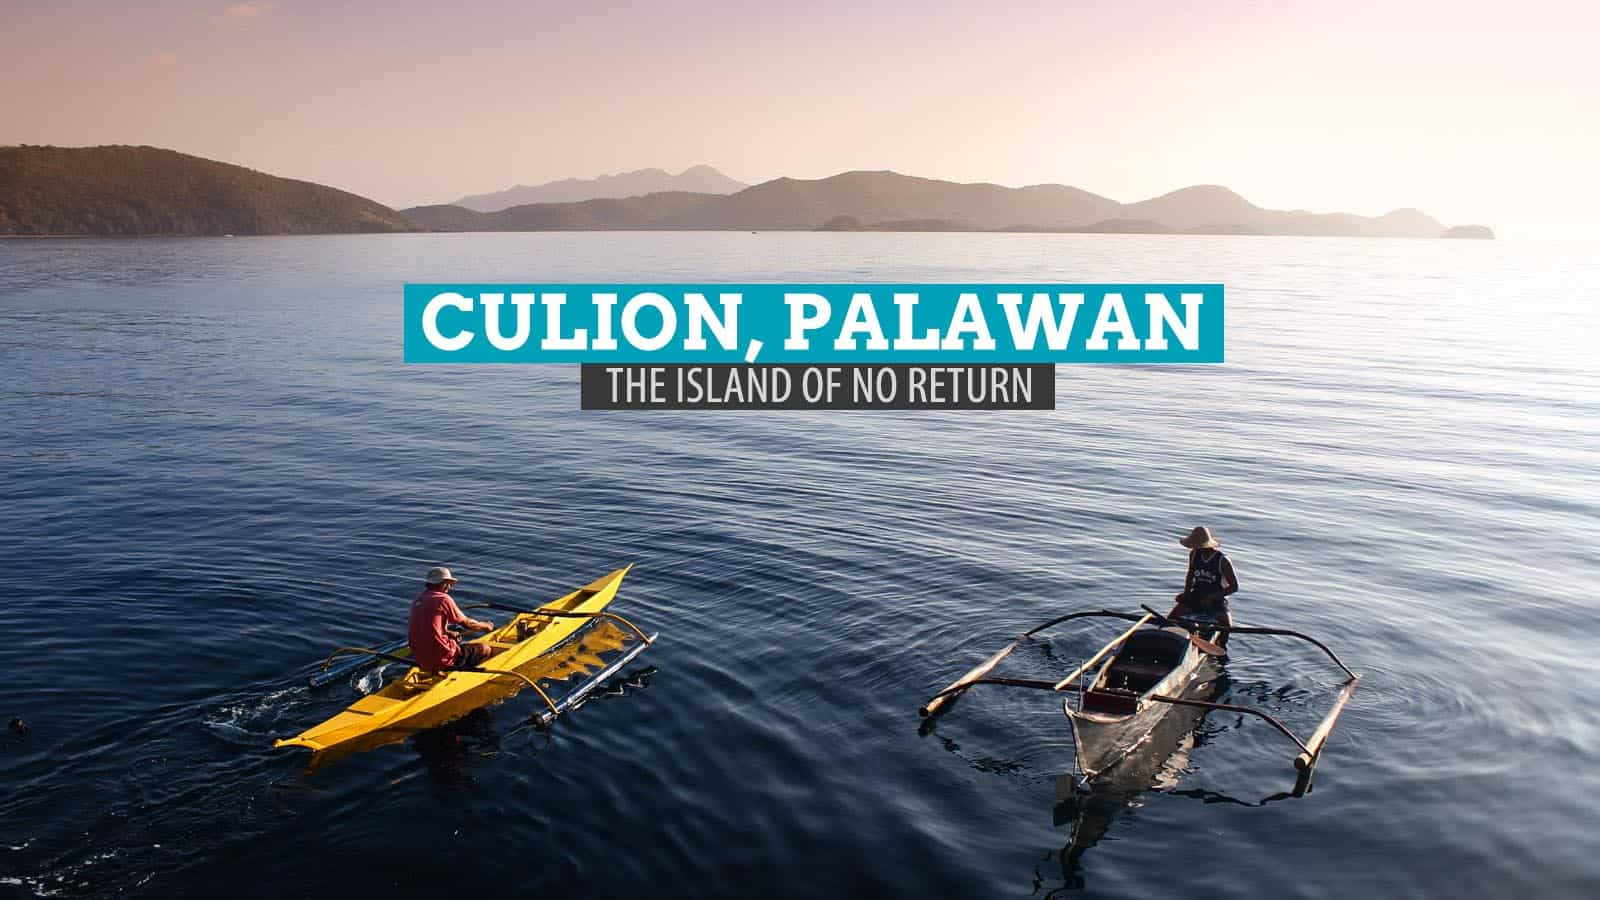 Culion, Palawan: To the 'Island of No Return' and Back